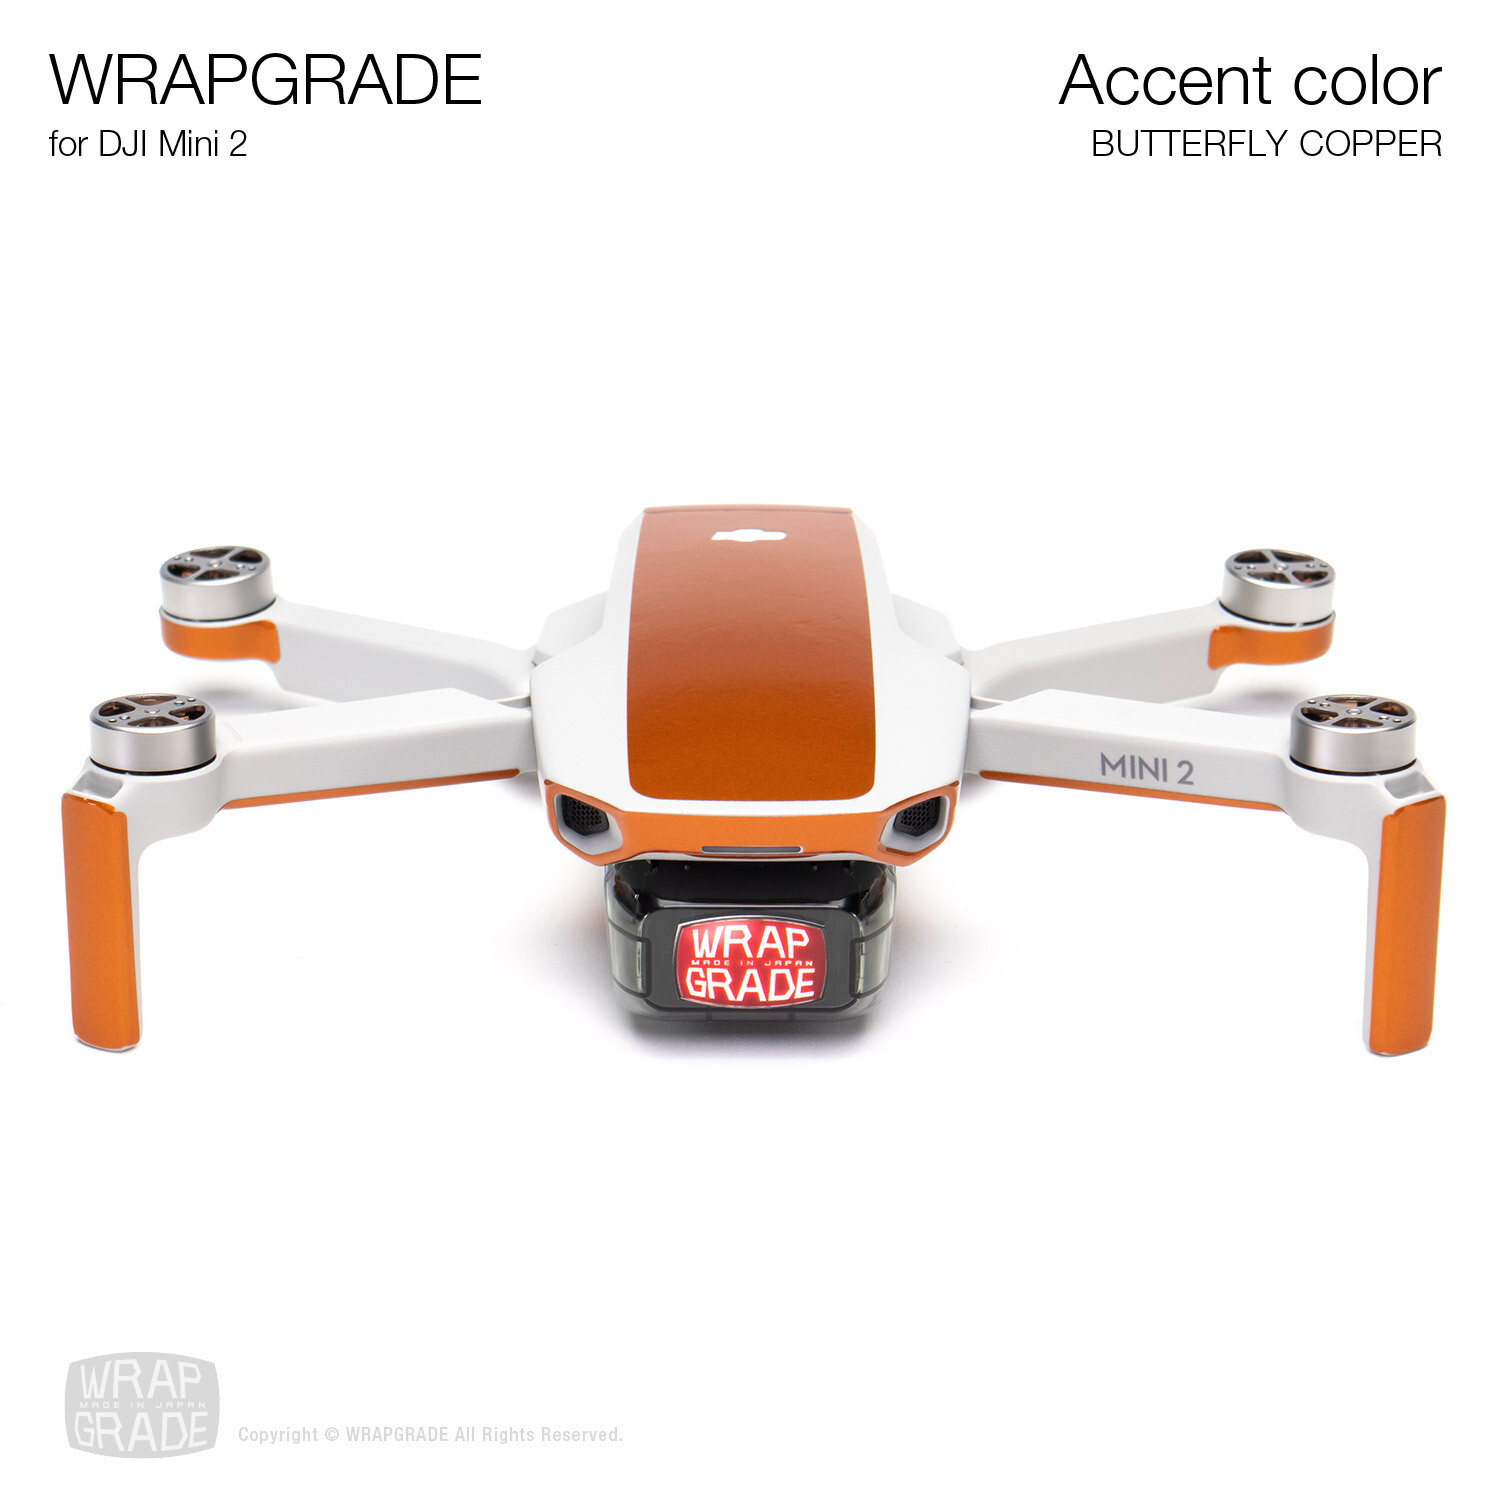 Wrapgrade Poly Skin for DJI Mini 2 | Accent color (BUTTERFLY COPPER)